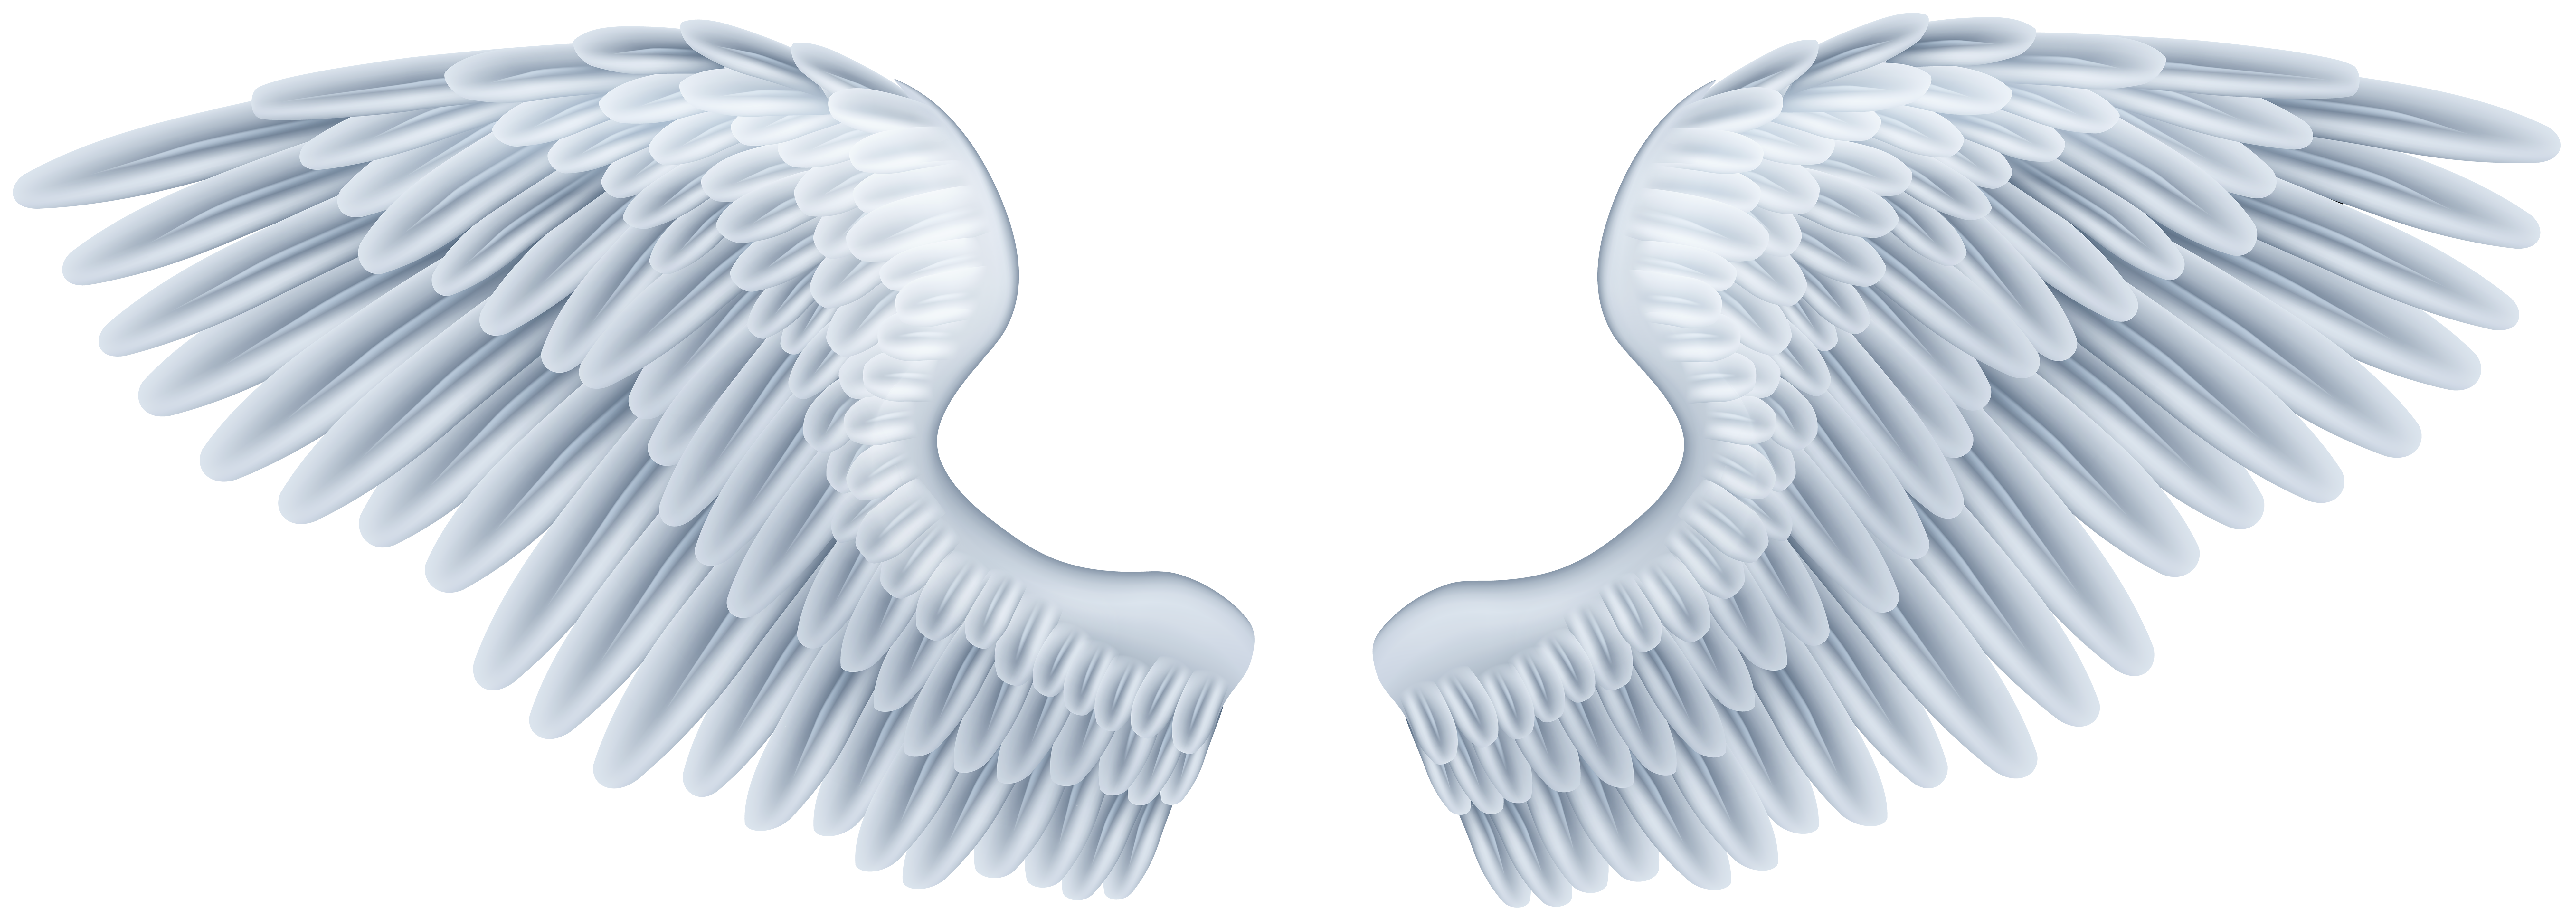 Baby angel wings png. Clip art image gallery